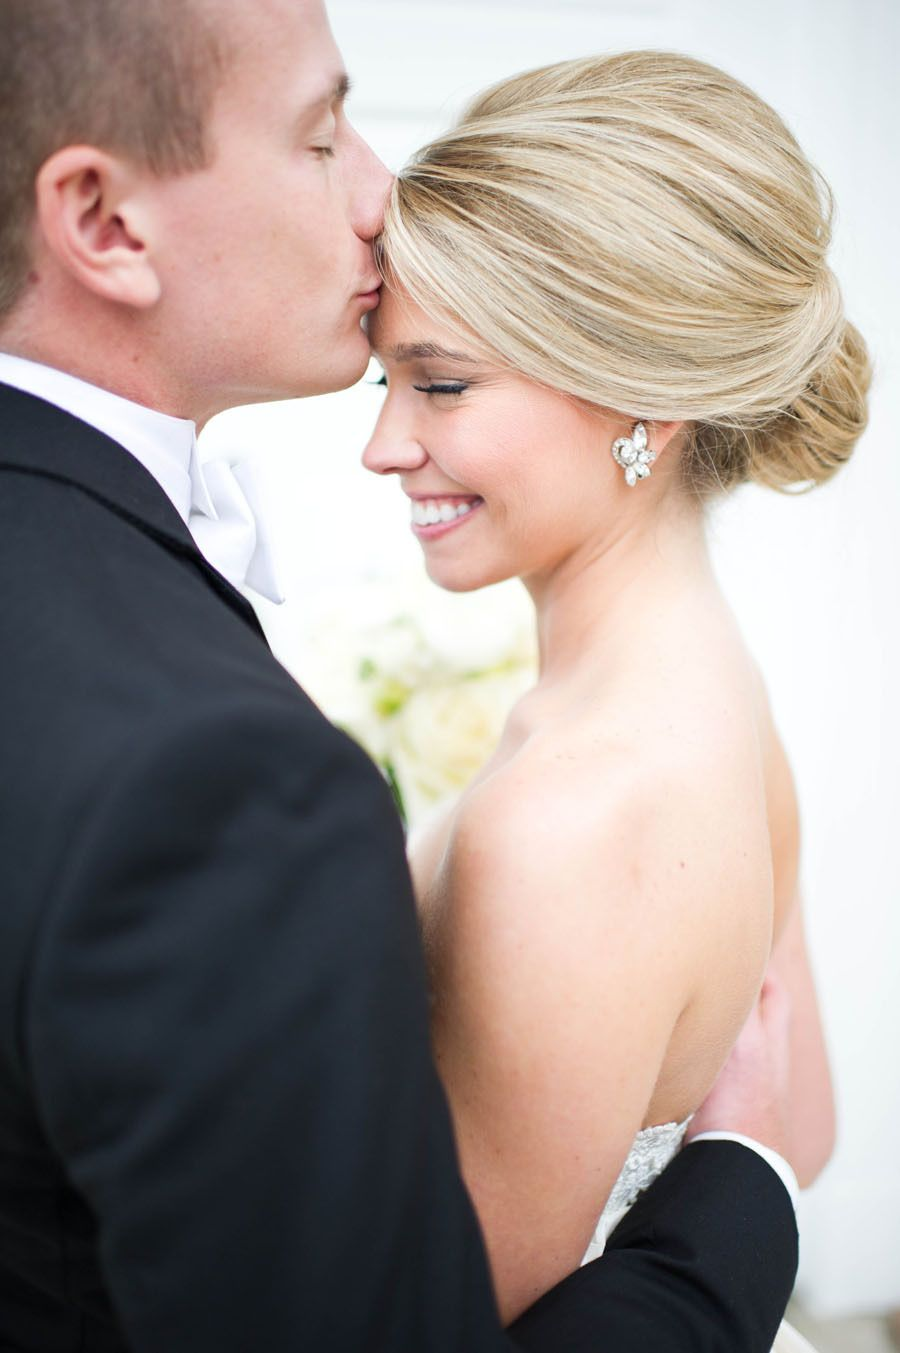 Georgia Wedding at the Dunwoody Country Club by Brita Photography